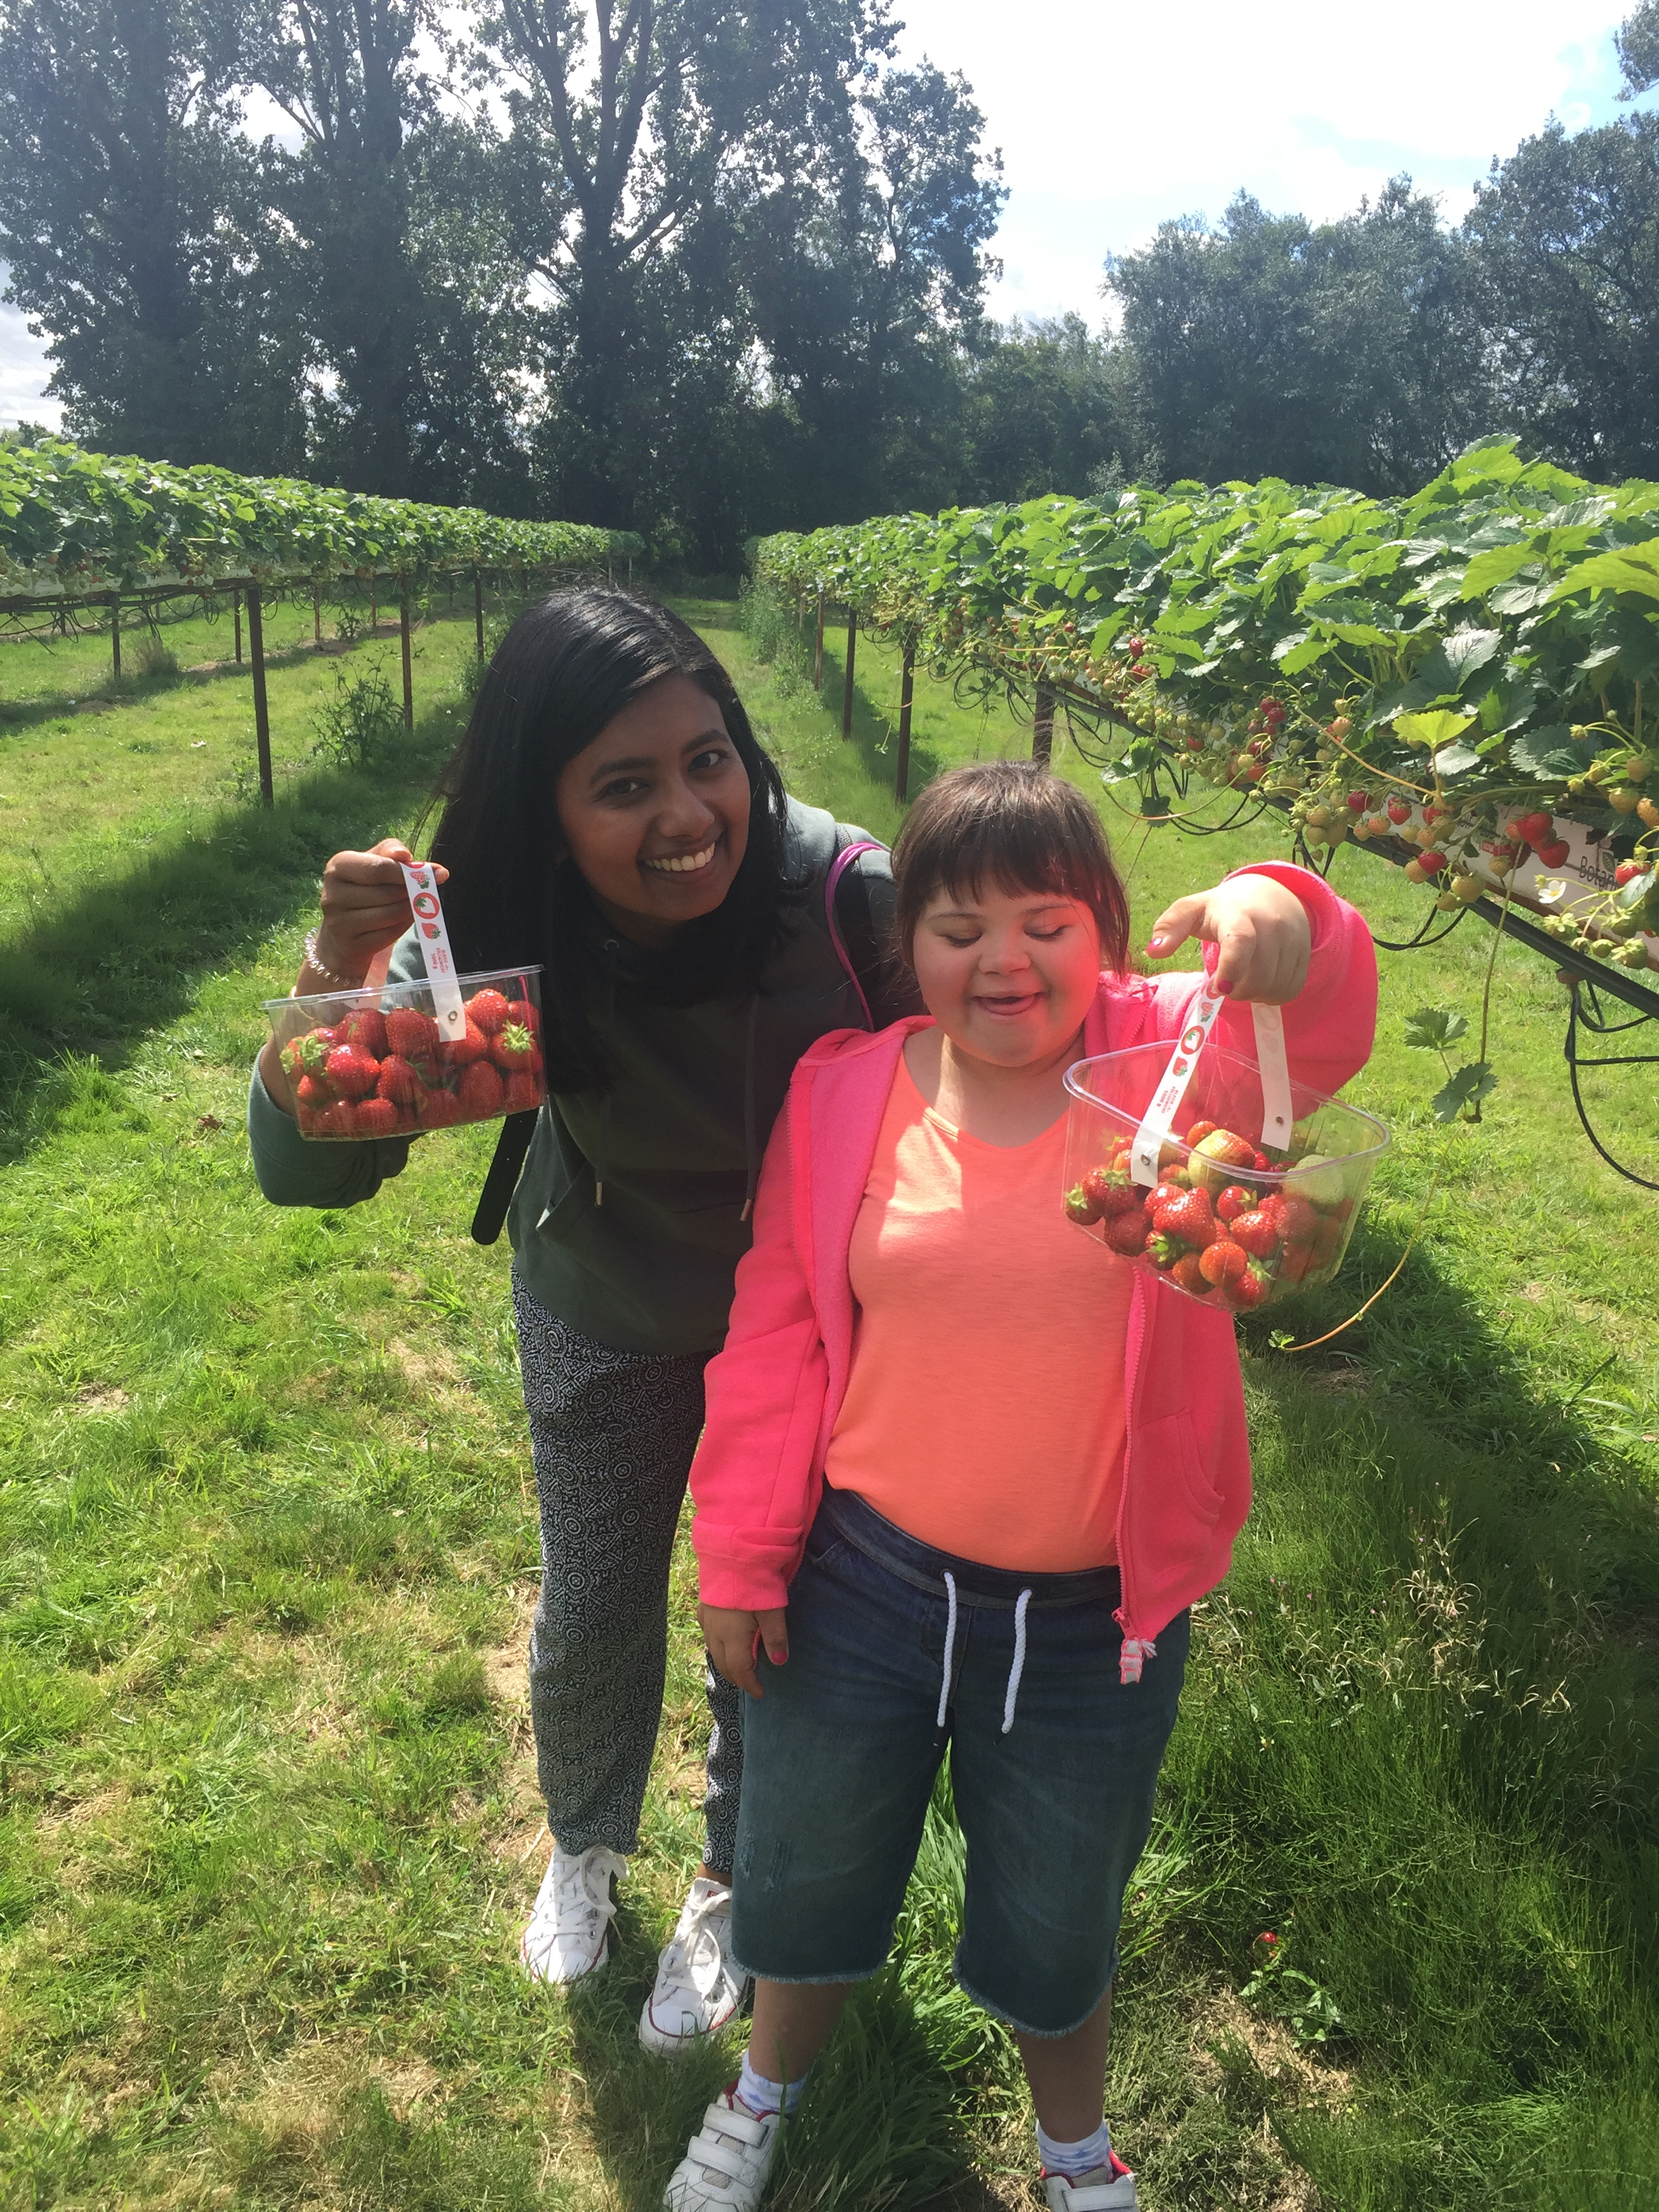 Two ladies standing together in a field smiling and holding full punnets of strawberries